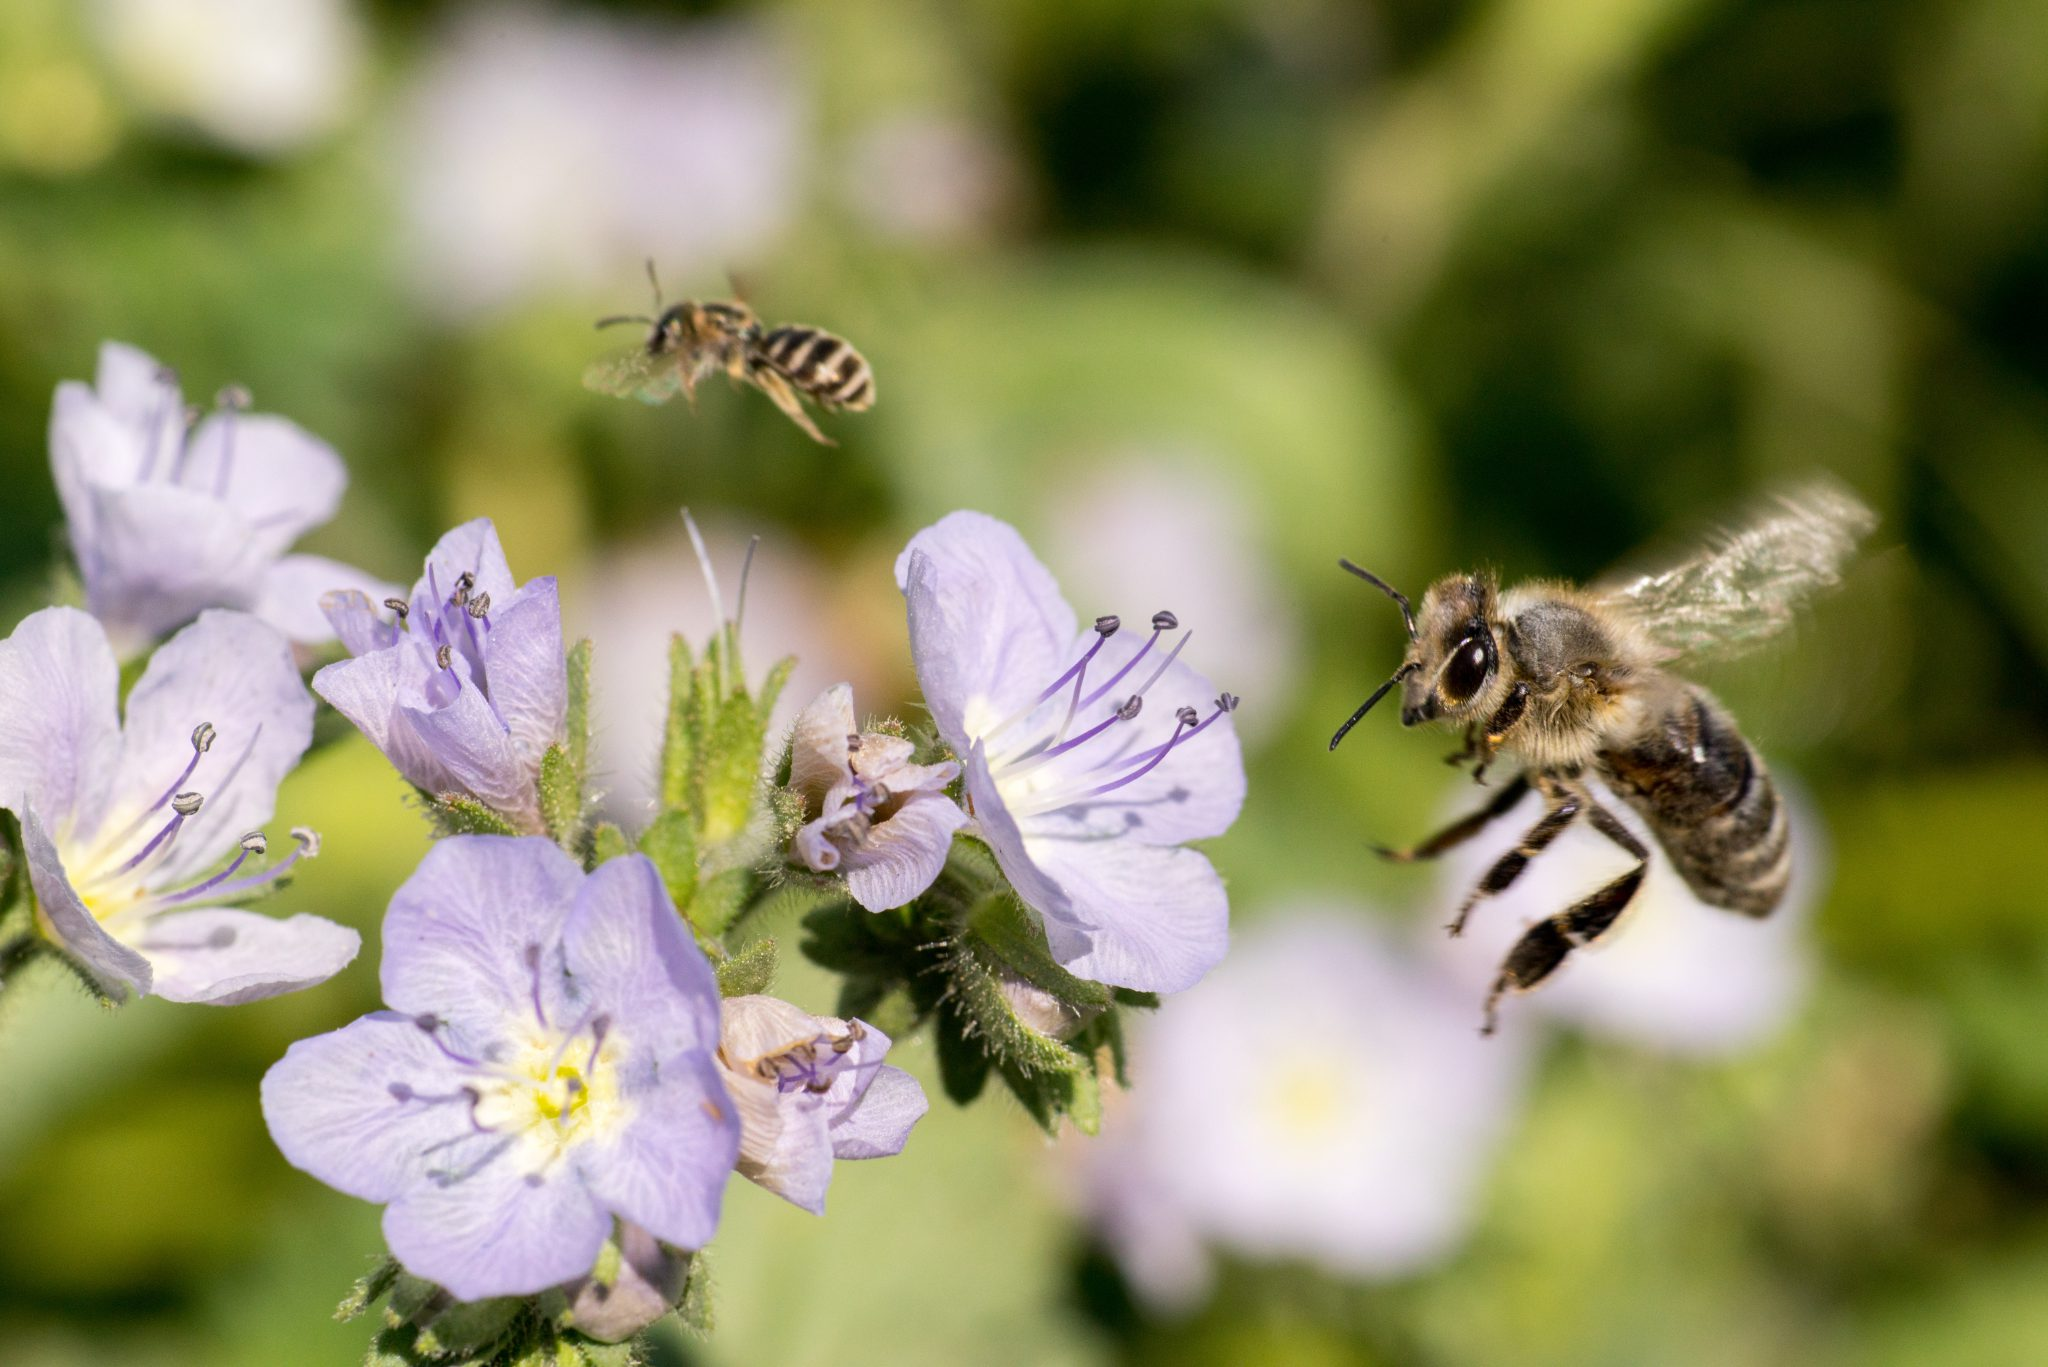 Here's how to attract helper bugs to your organic farm: grow some native plants